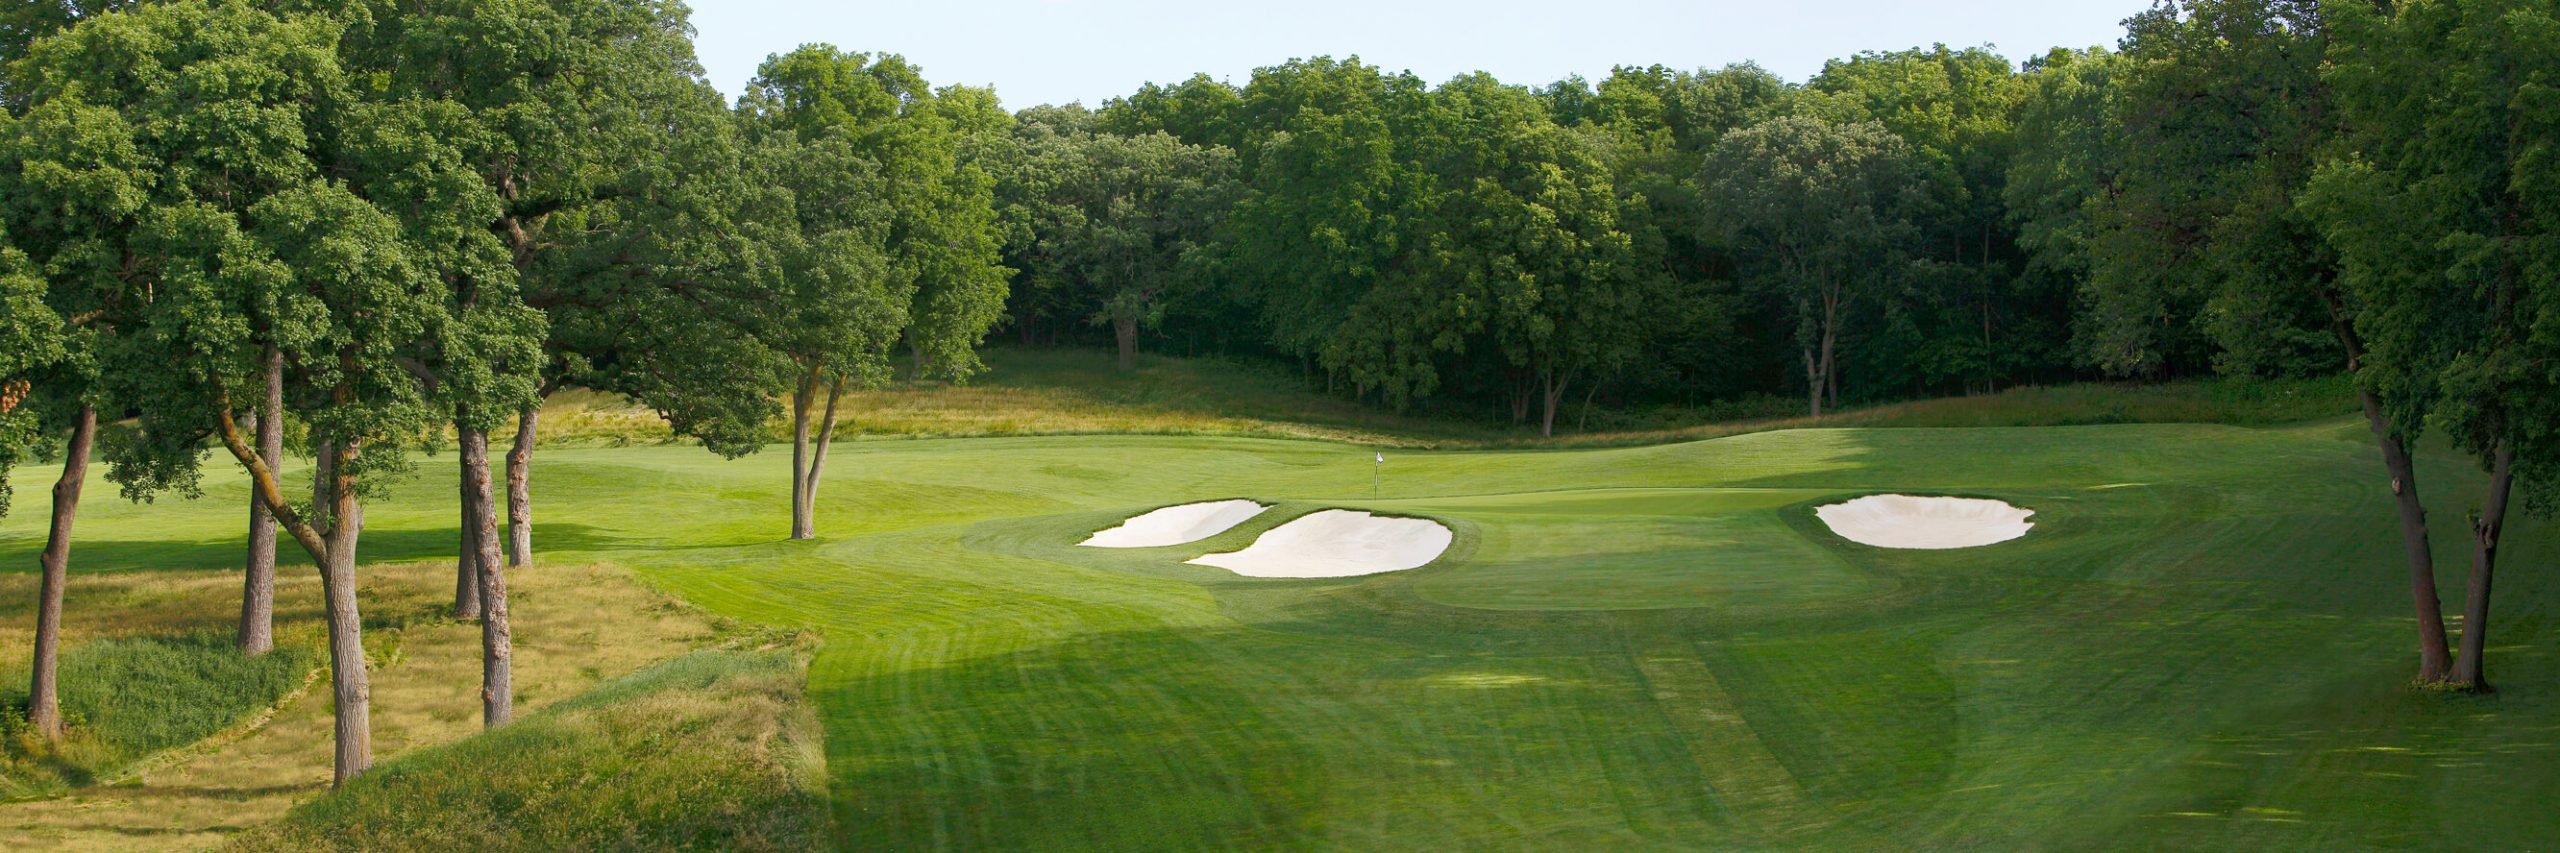 Golf Course Image - Omaha Country Club No. 5